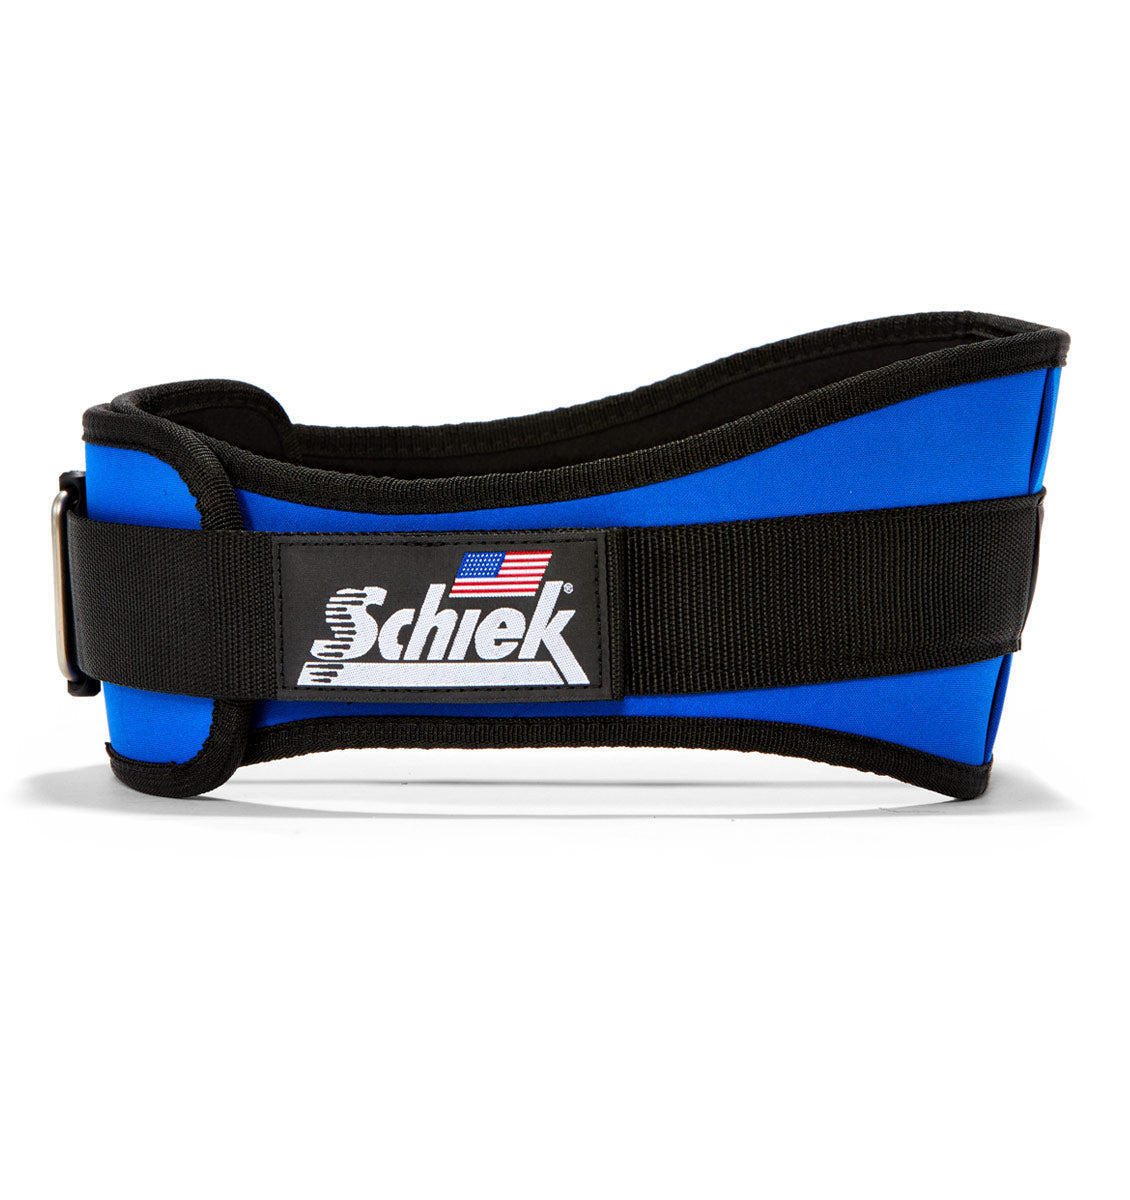 2006 Schiek Contour Weight Lifting Belt Royal Blue Side